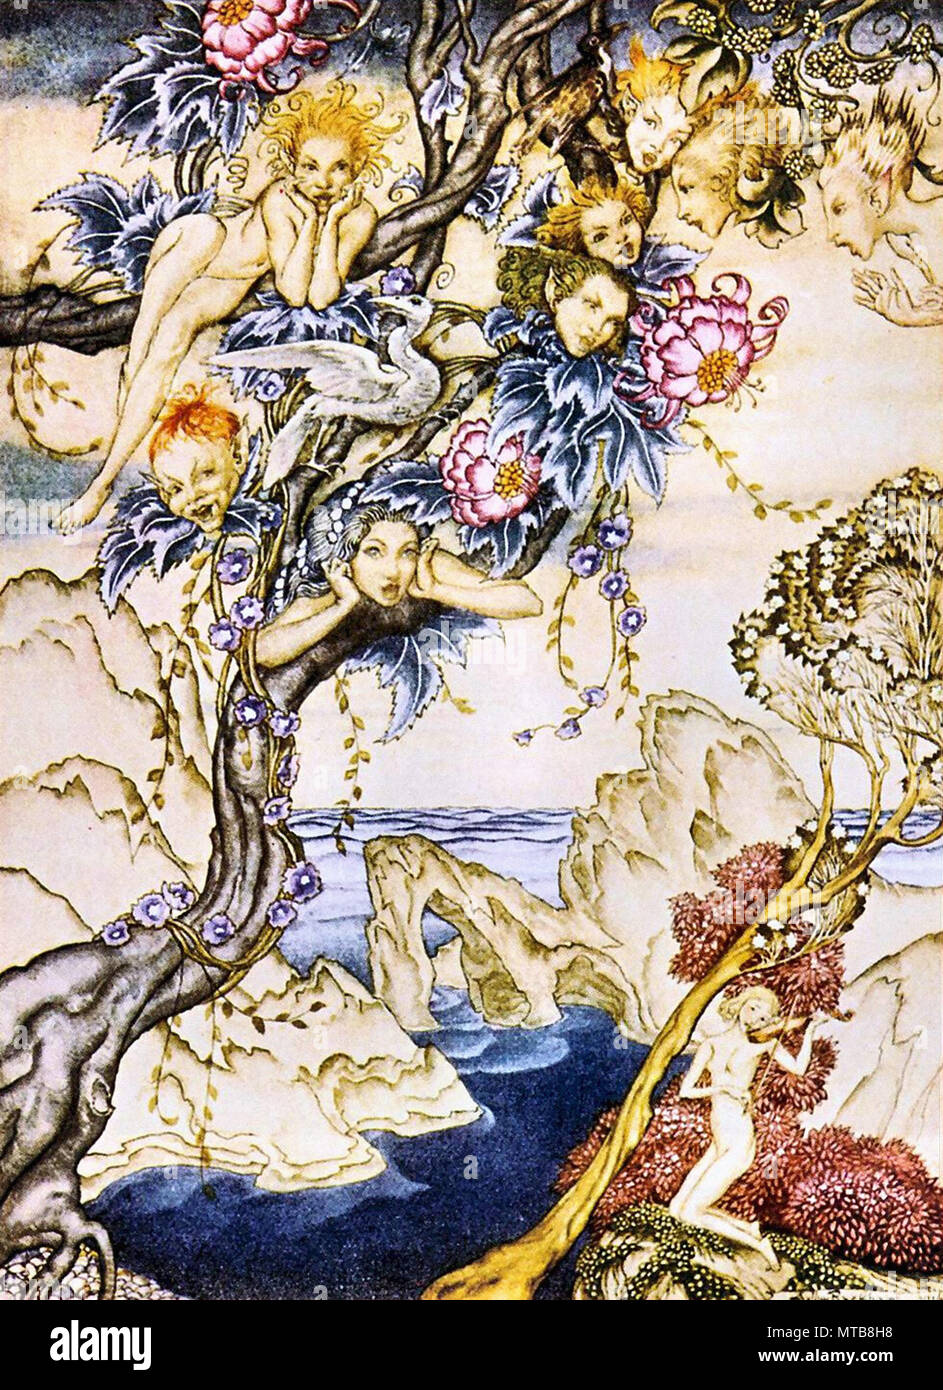 Rackham Arthur - the Tempest - the Isle Is Full of Noises Sounds and Sweet Airs that Give Delight an Hurt Not - Stock Image